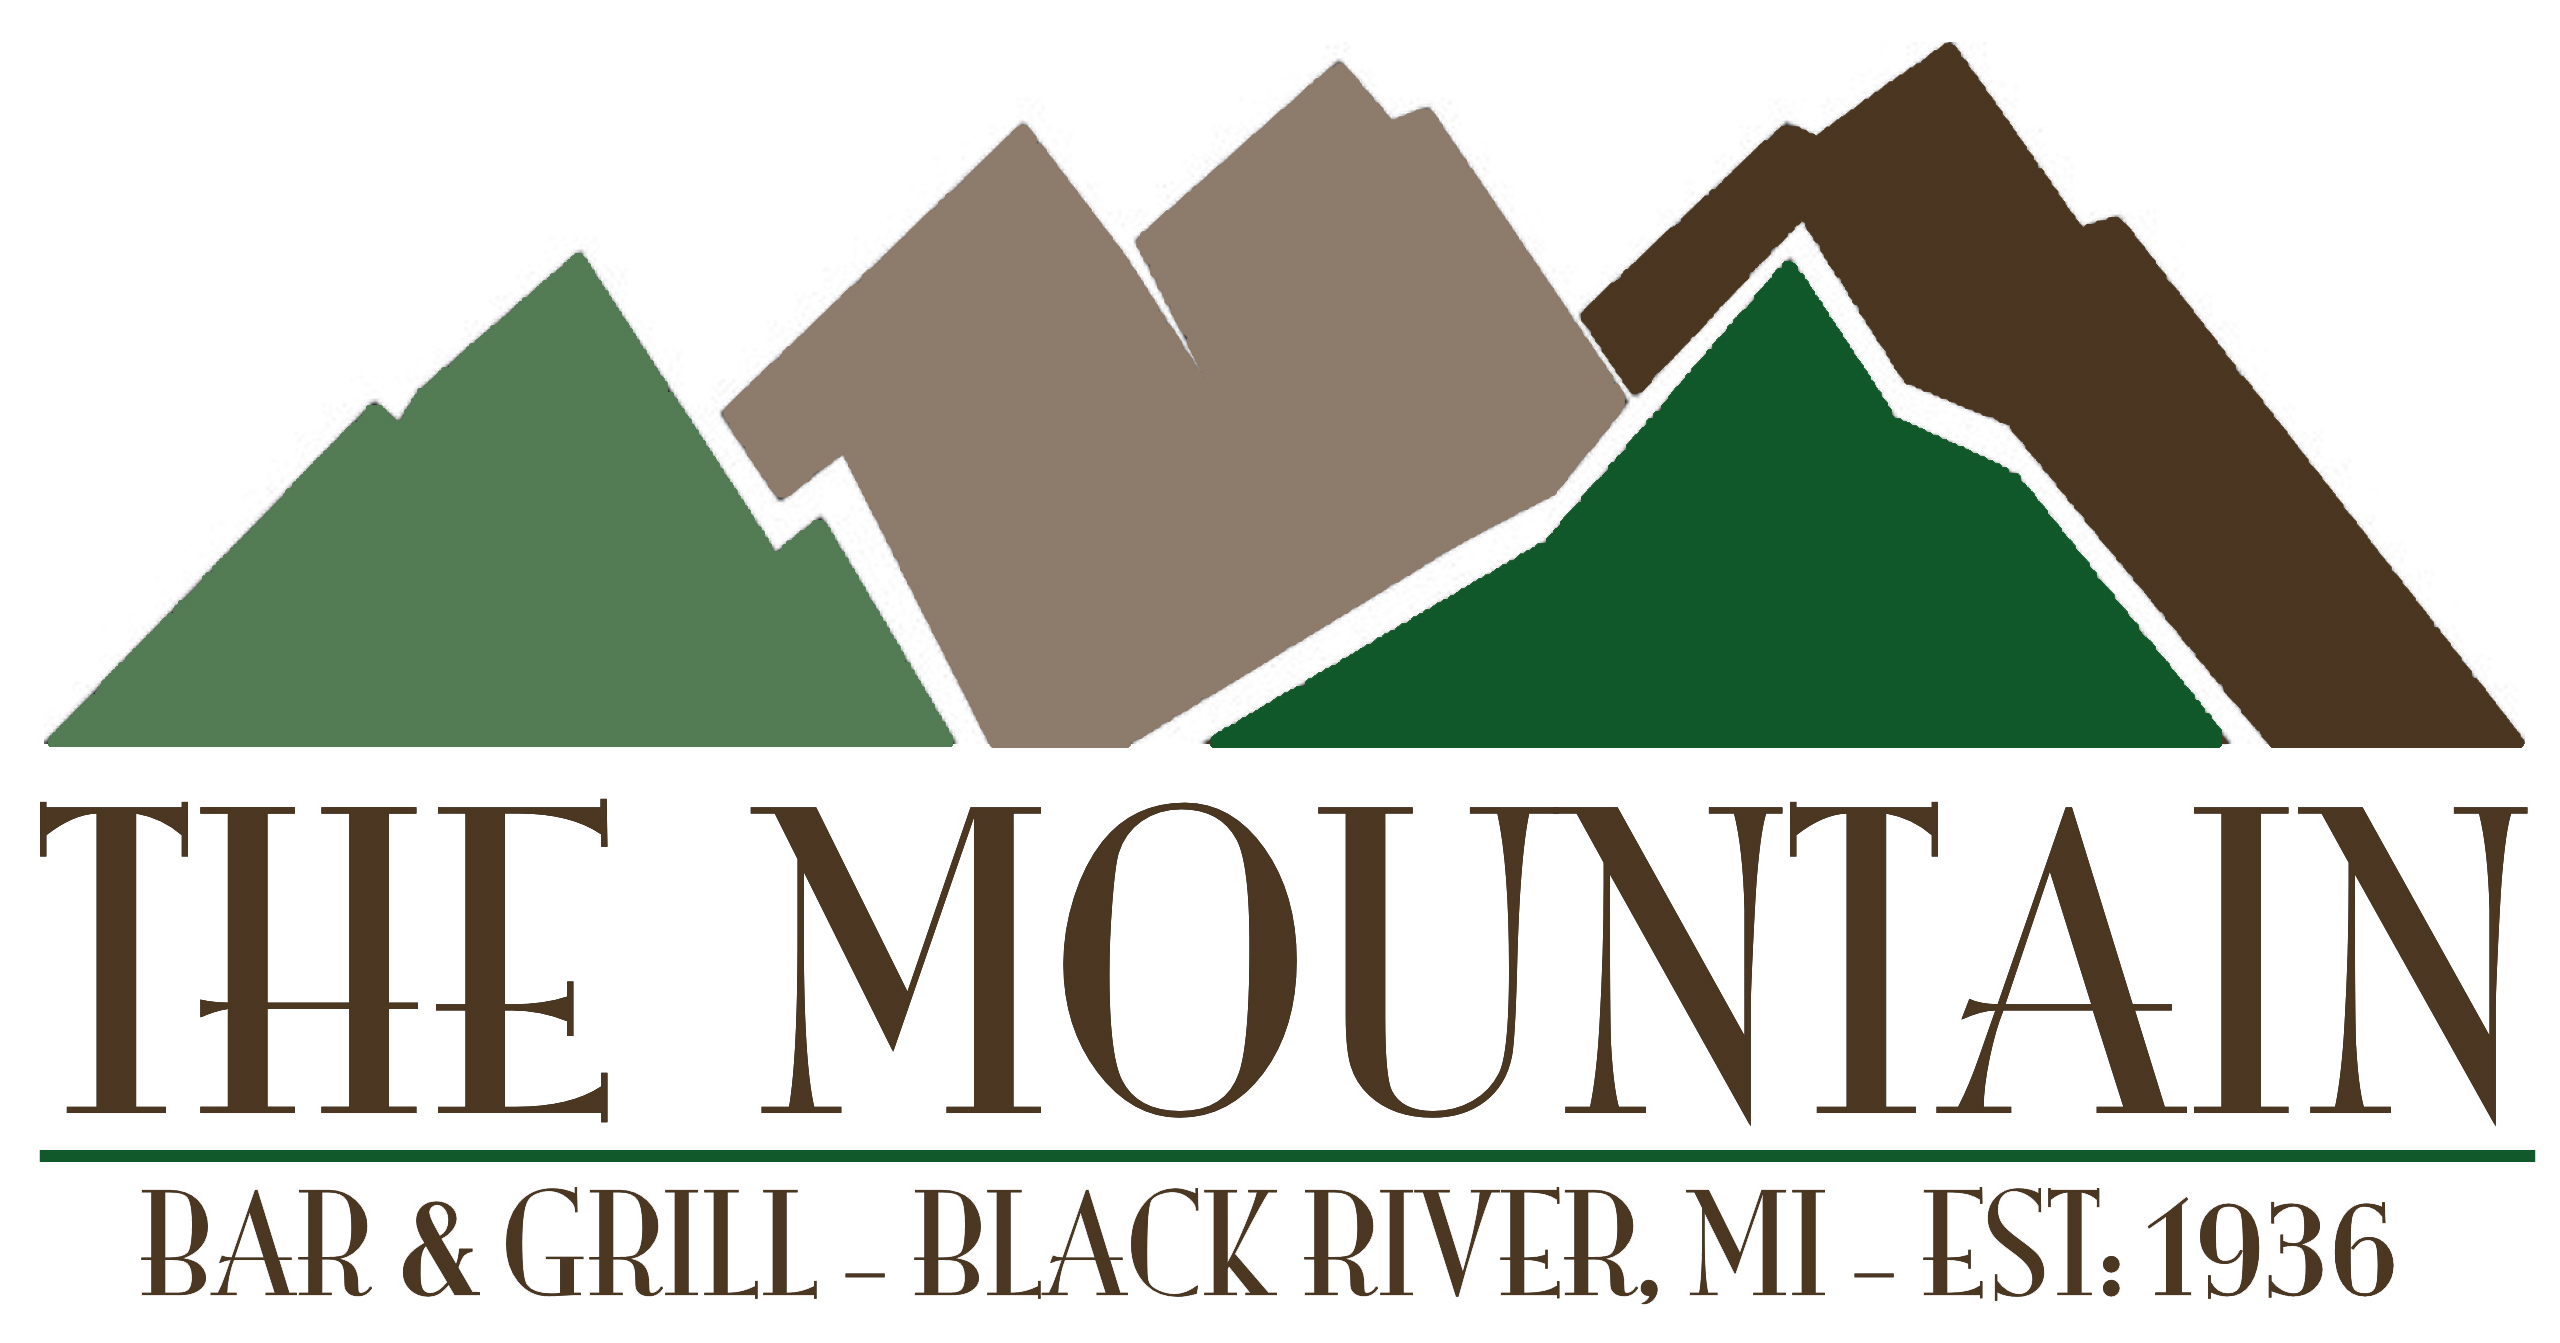 The Mountain Bar & Grill